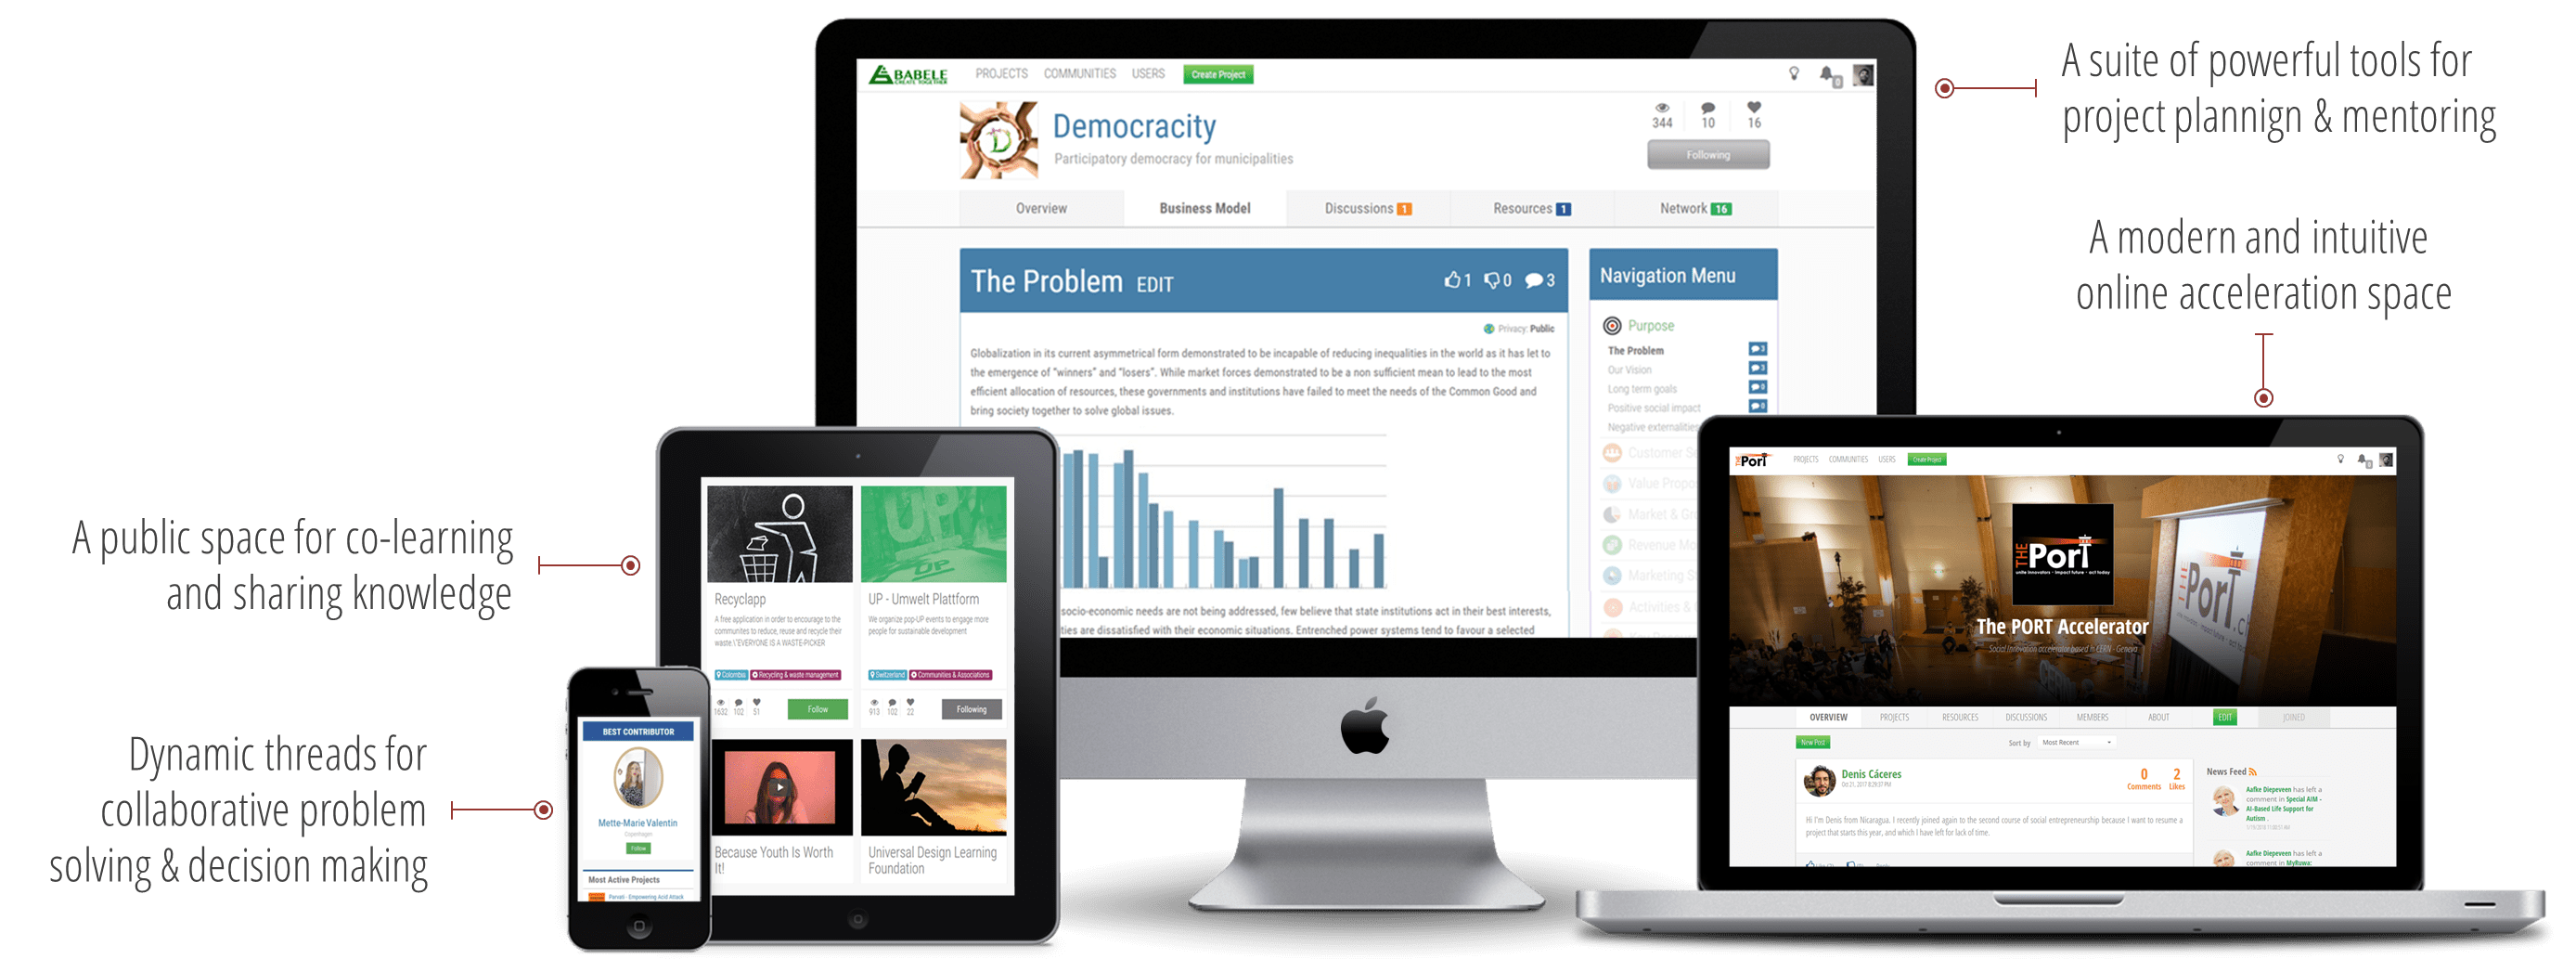 Babele - Online Crowd Innovation tools for strategic